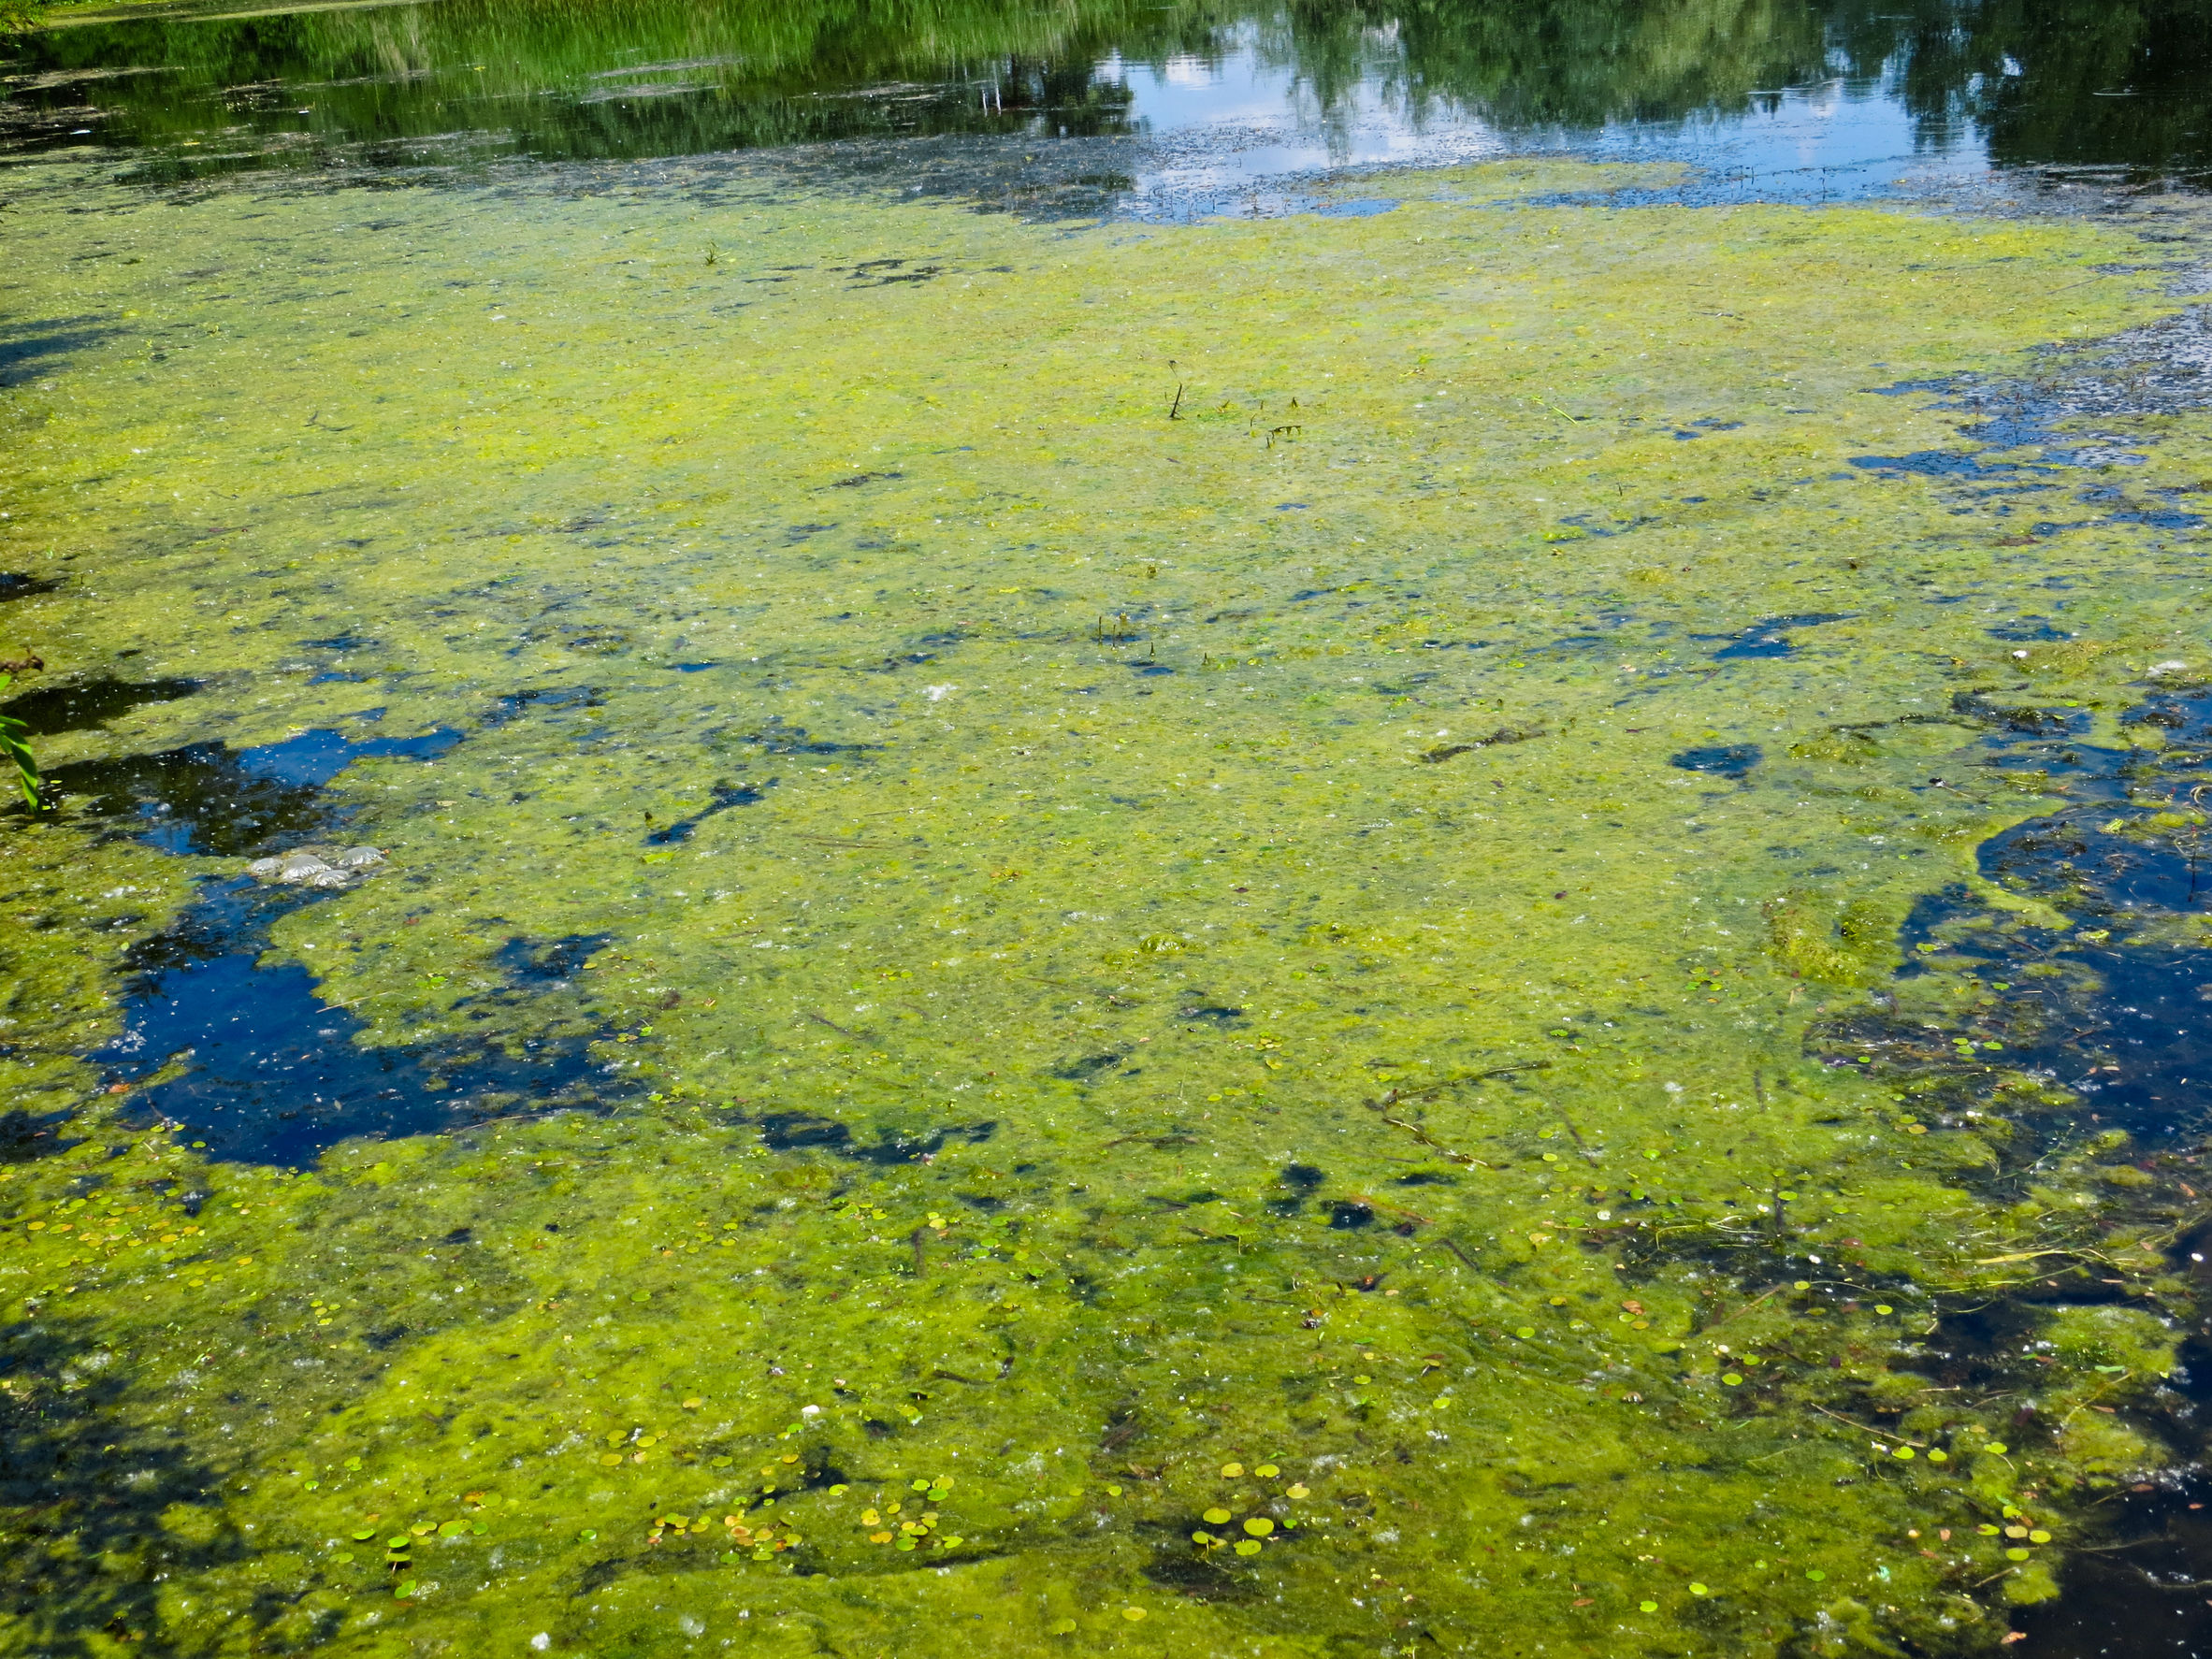 58604308 - green algae on a surface of the lake